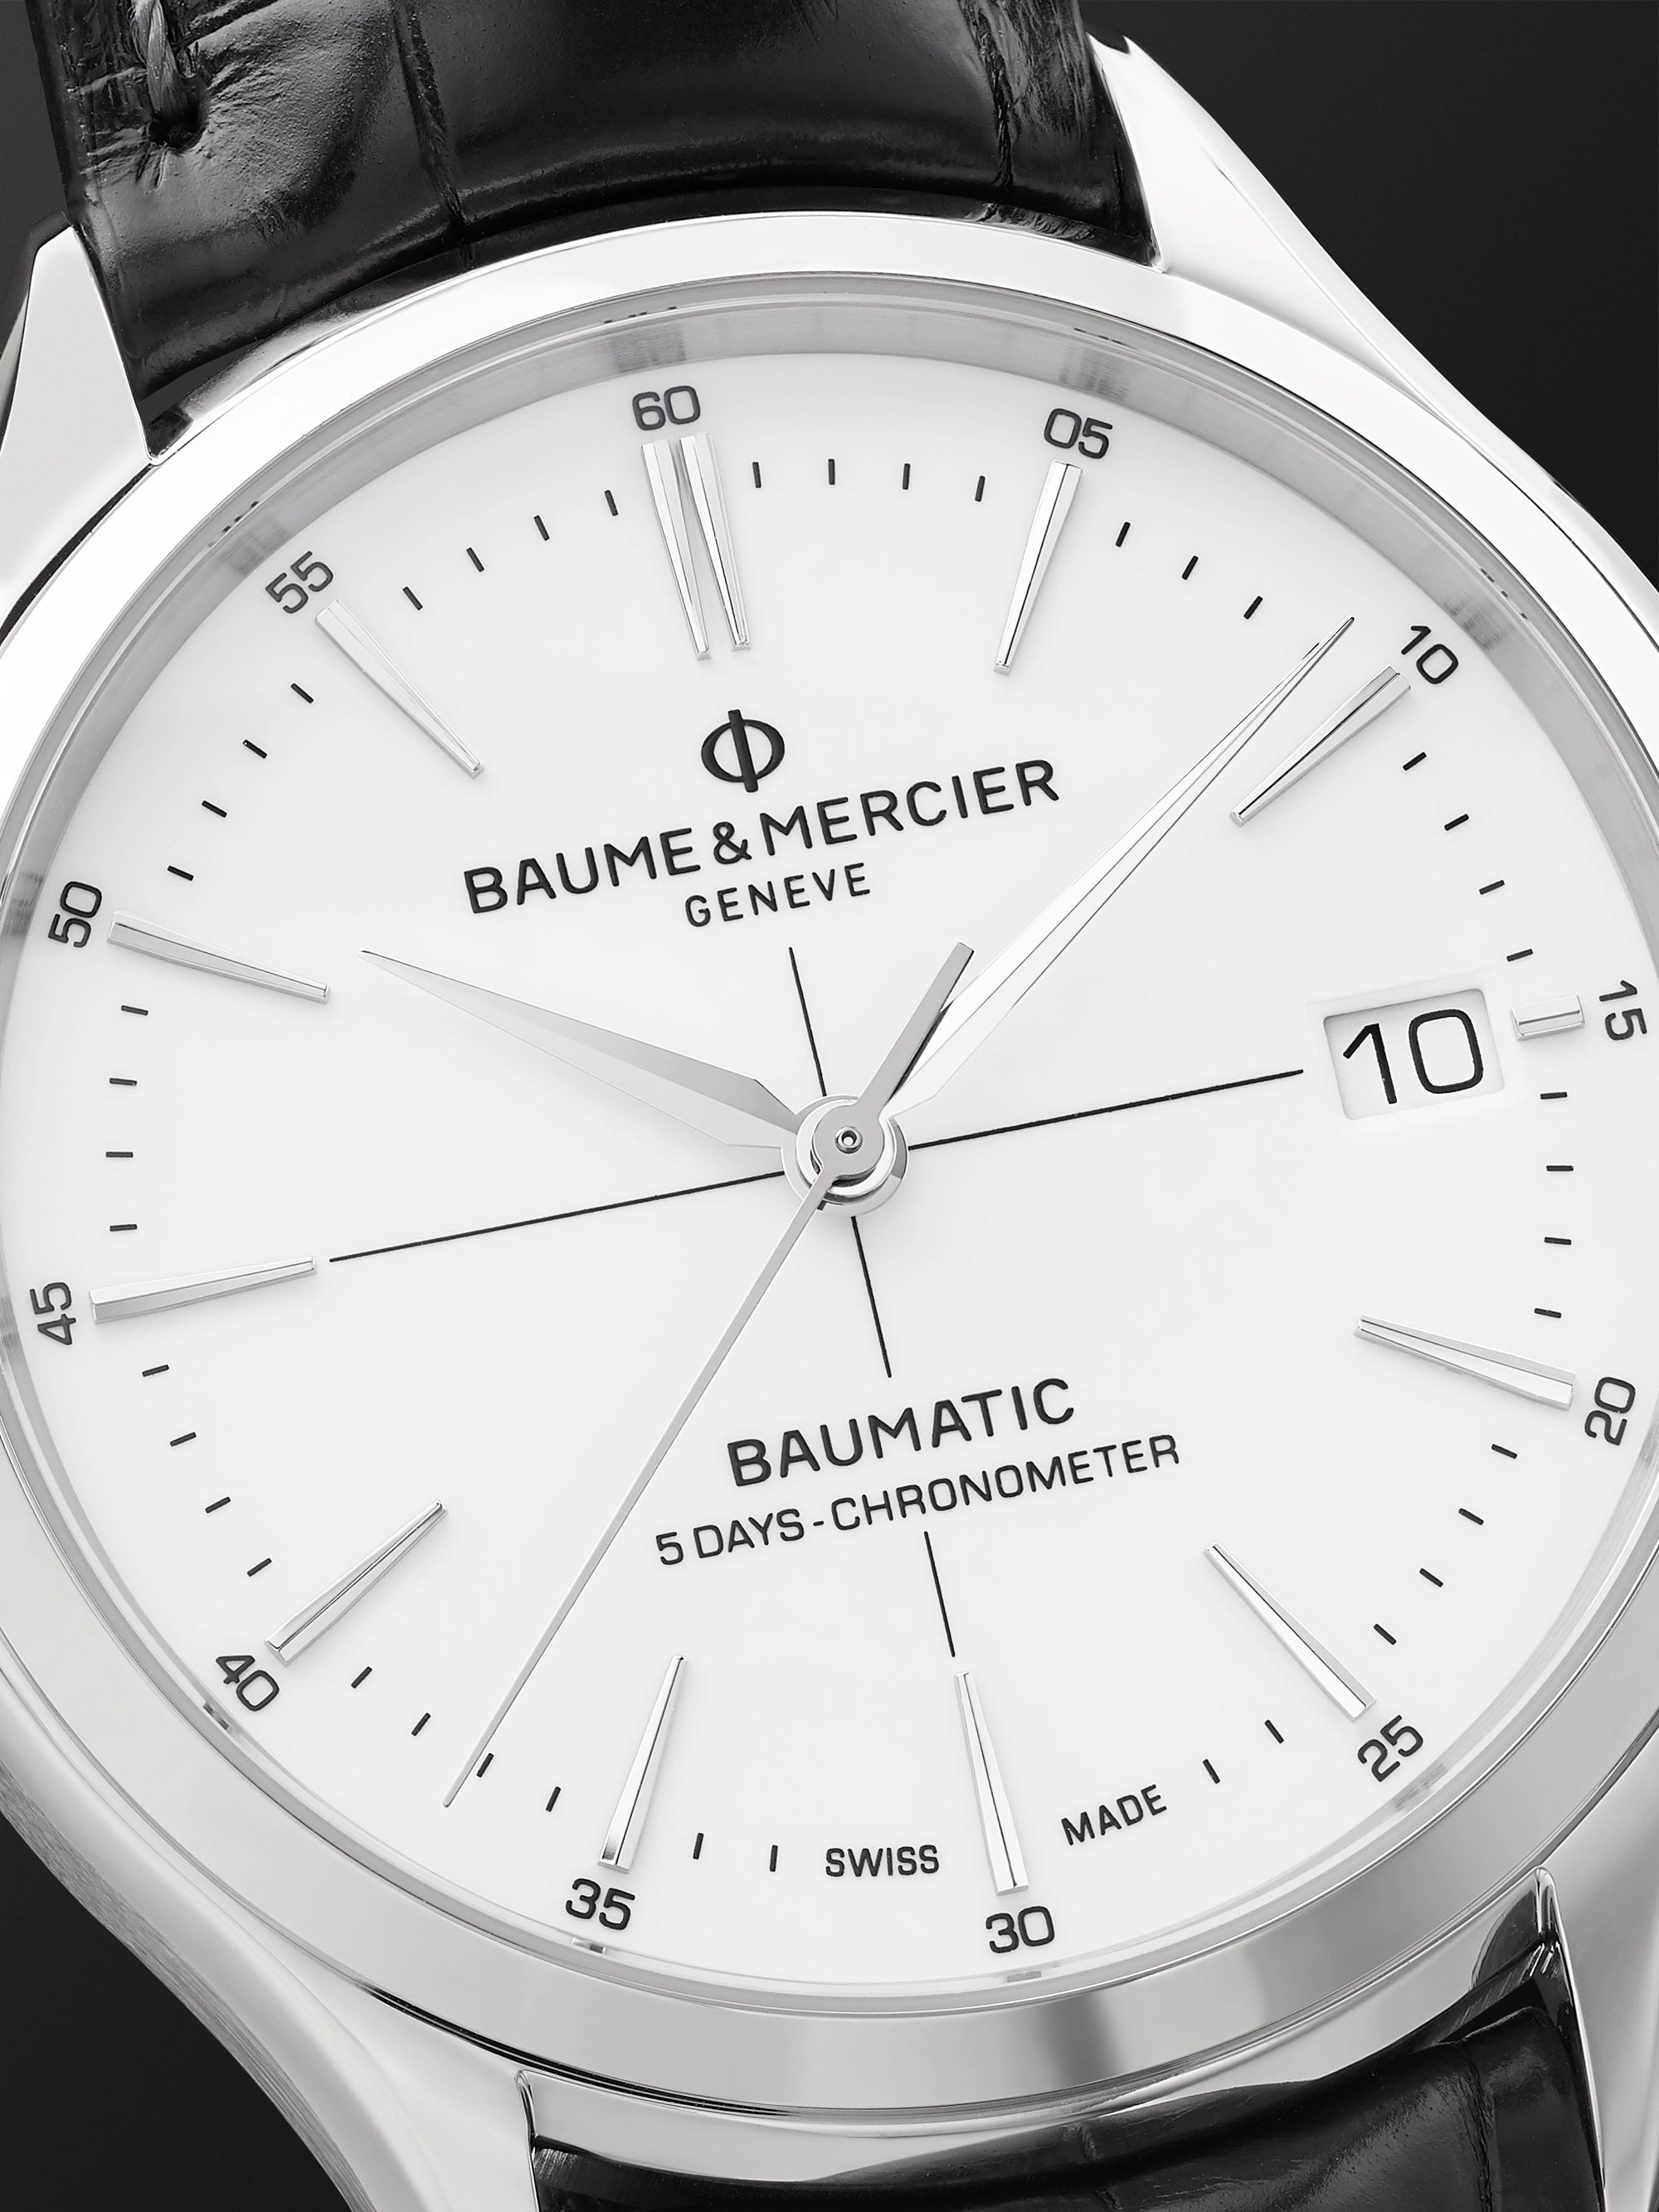 Baume & Mercier Clifton Baumatic Automatic Chronometer 40mm Stainless Steel and Alligator Watch, Ref. No. M0A10518